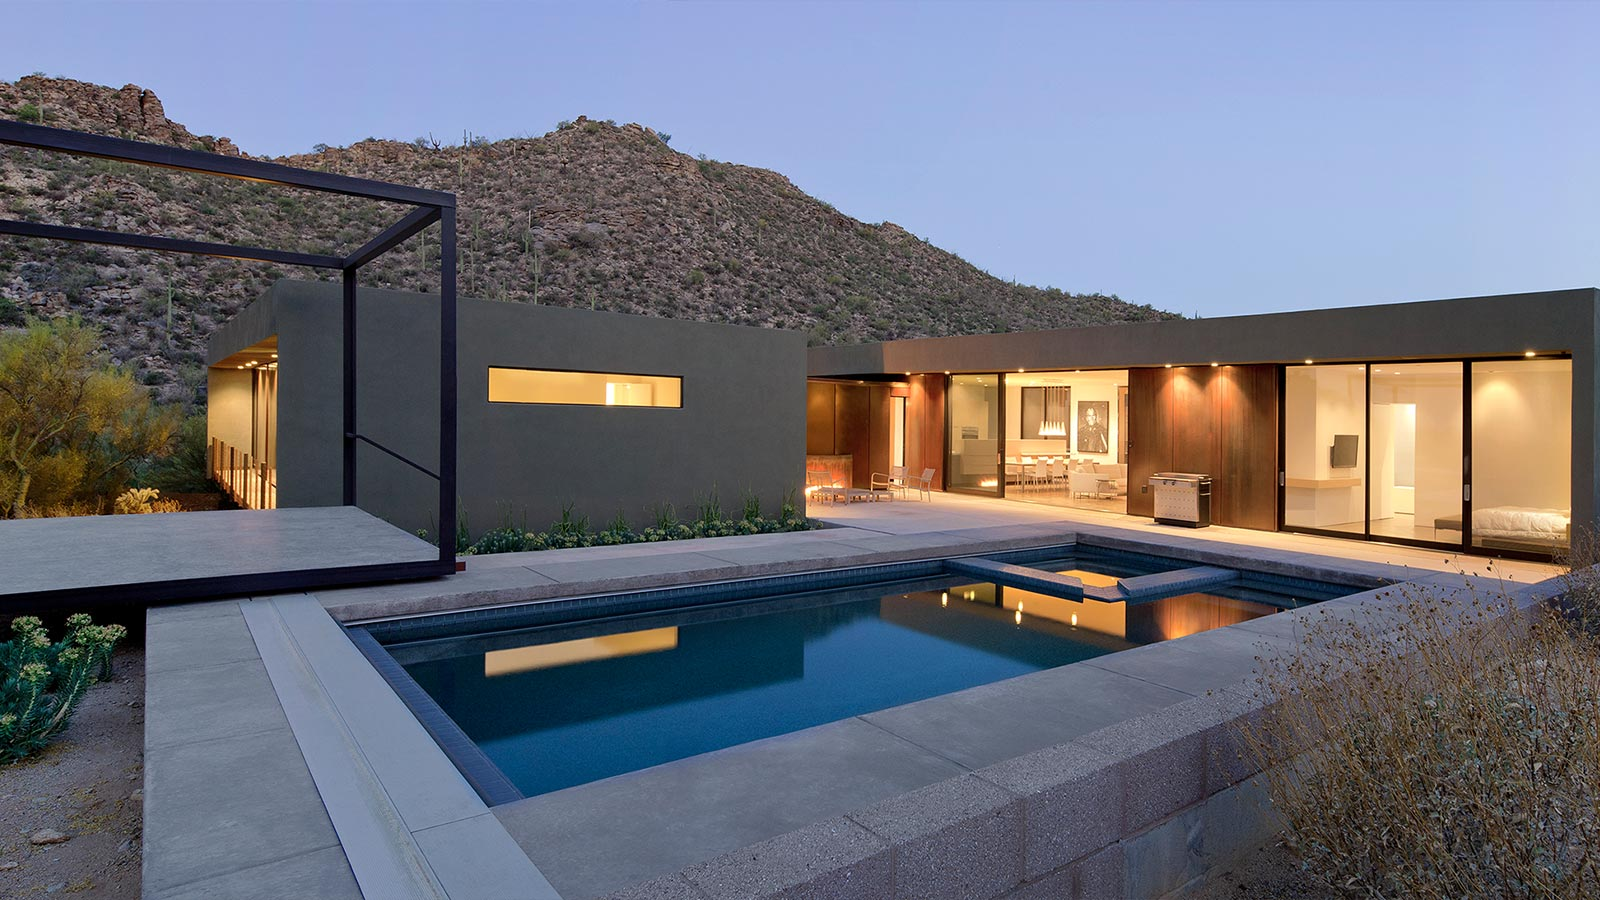 Levin Residence A Sleek Desert House In Marana Arizona